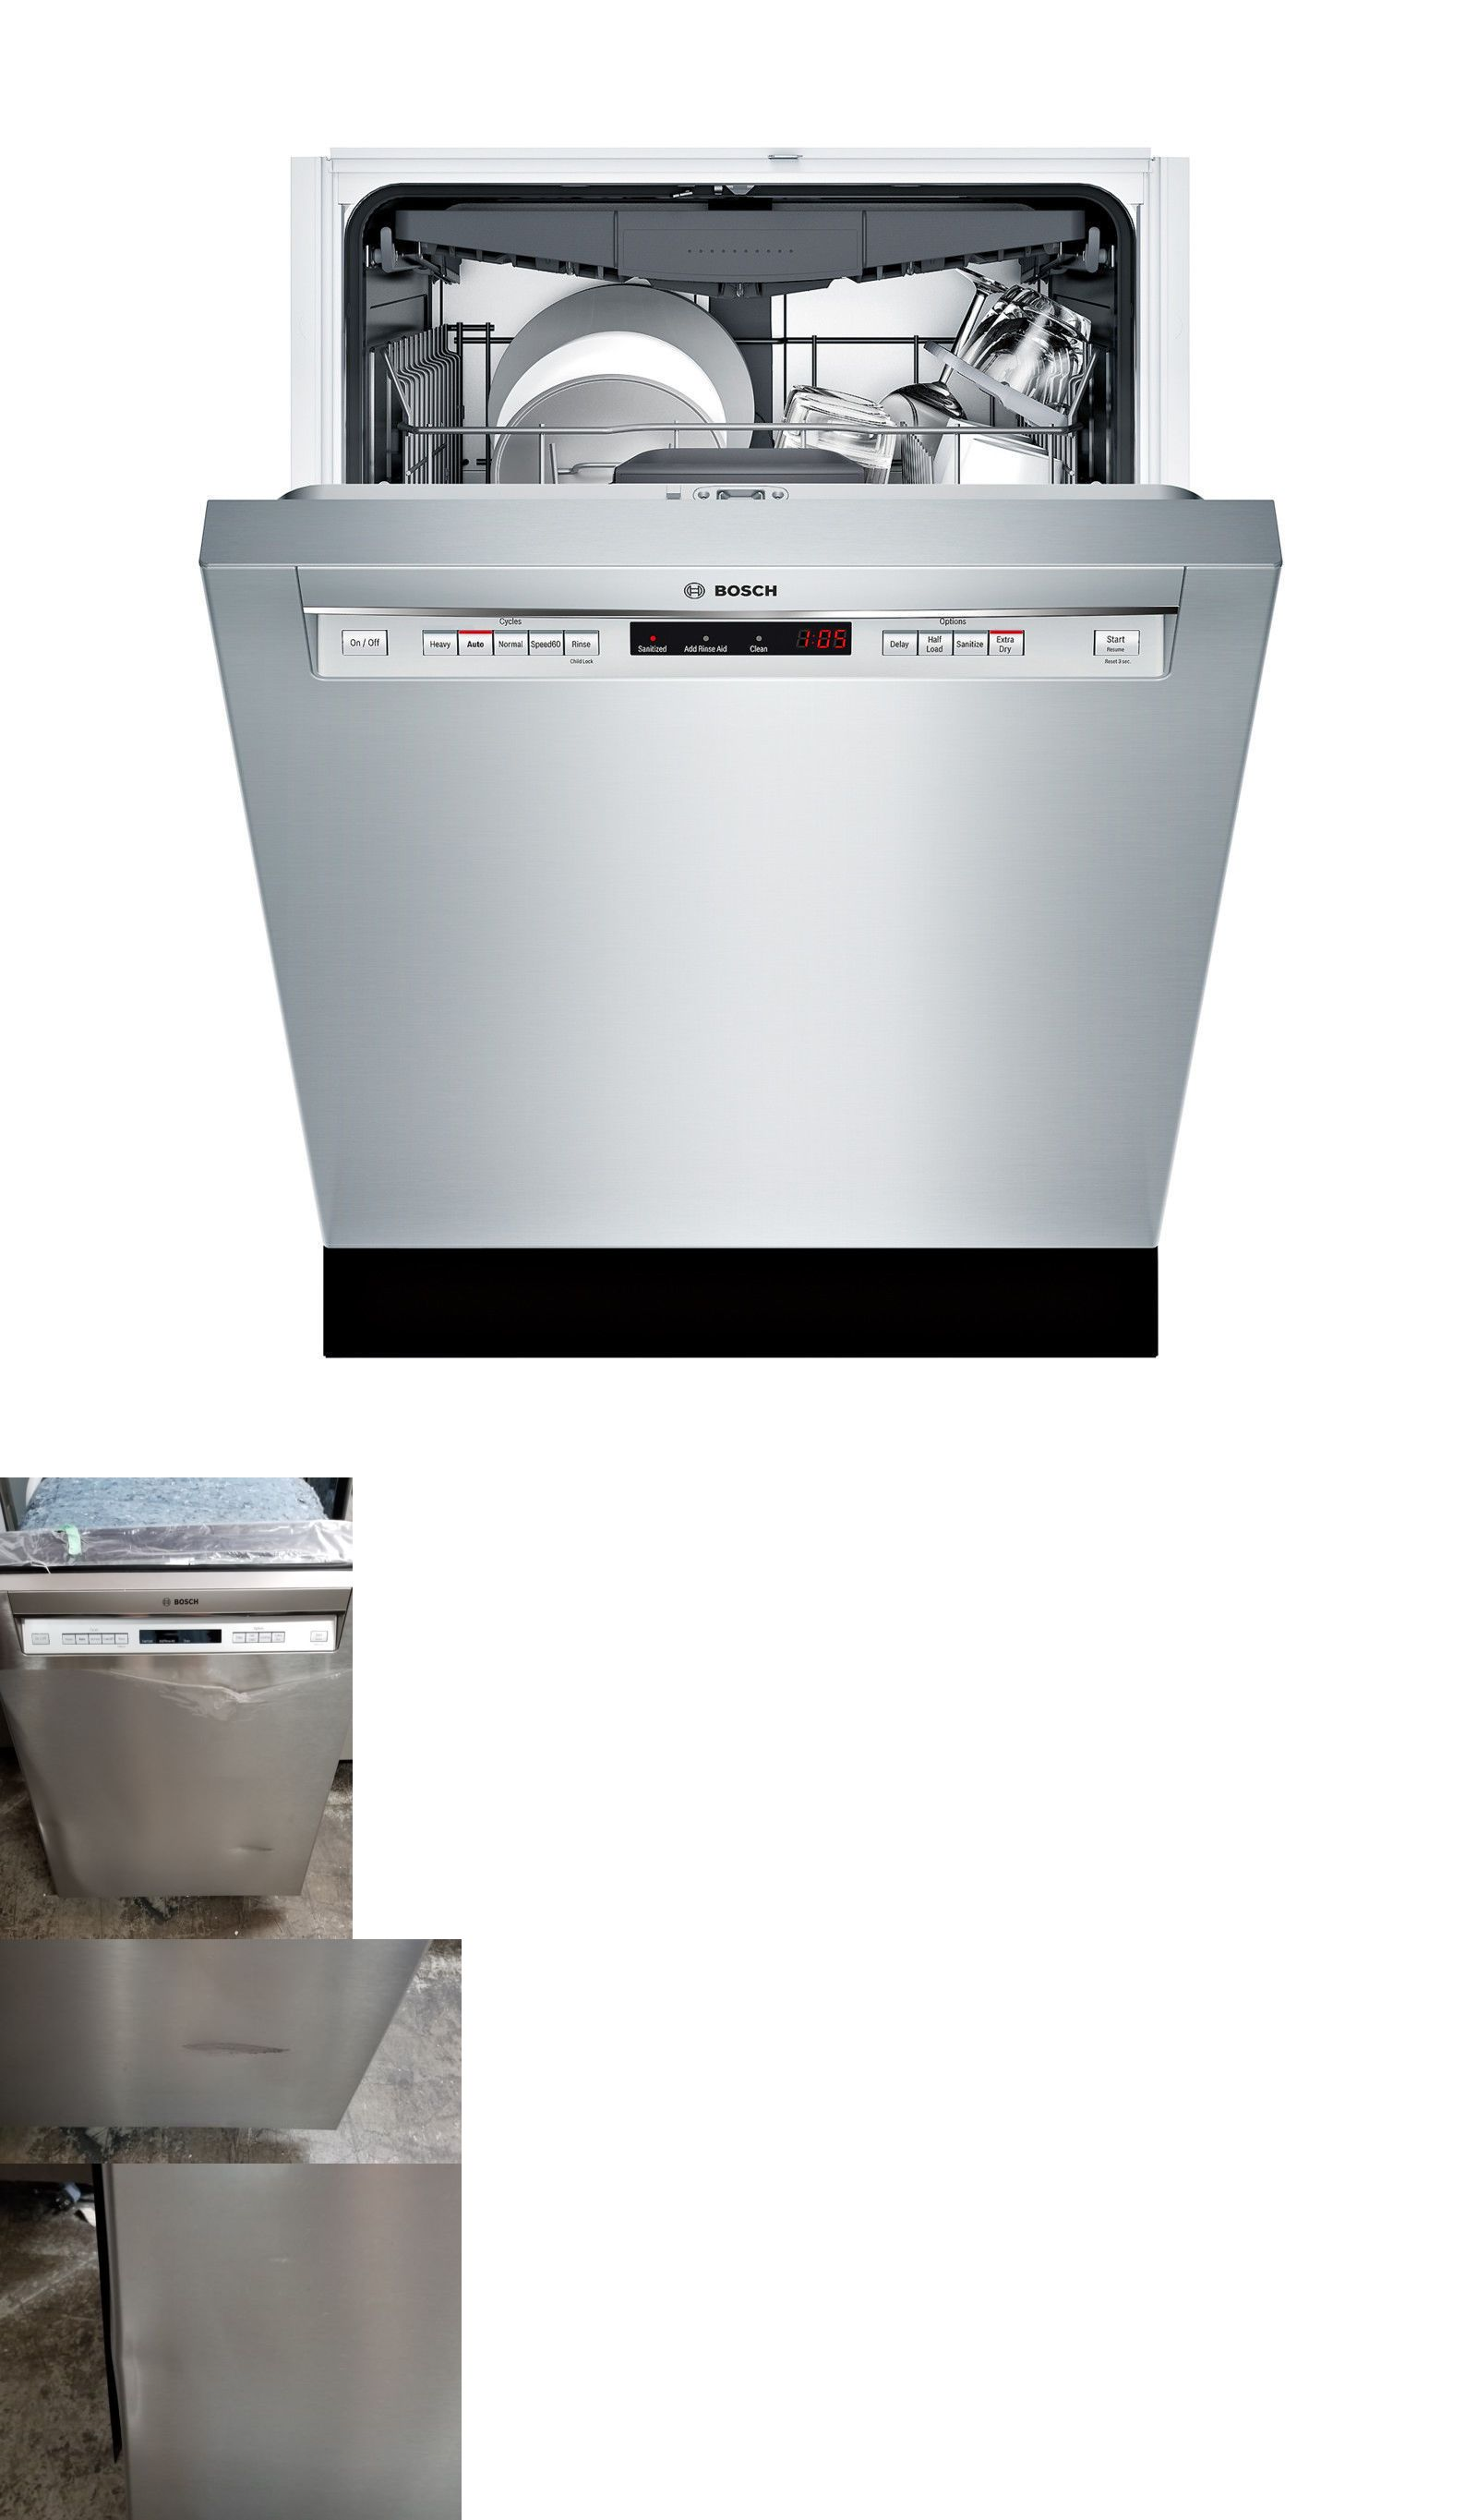 Pin On Dishwashers 116023